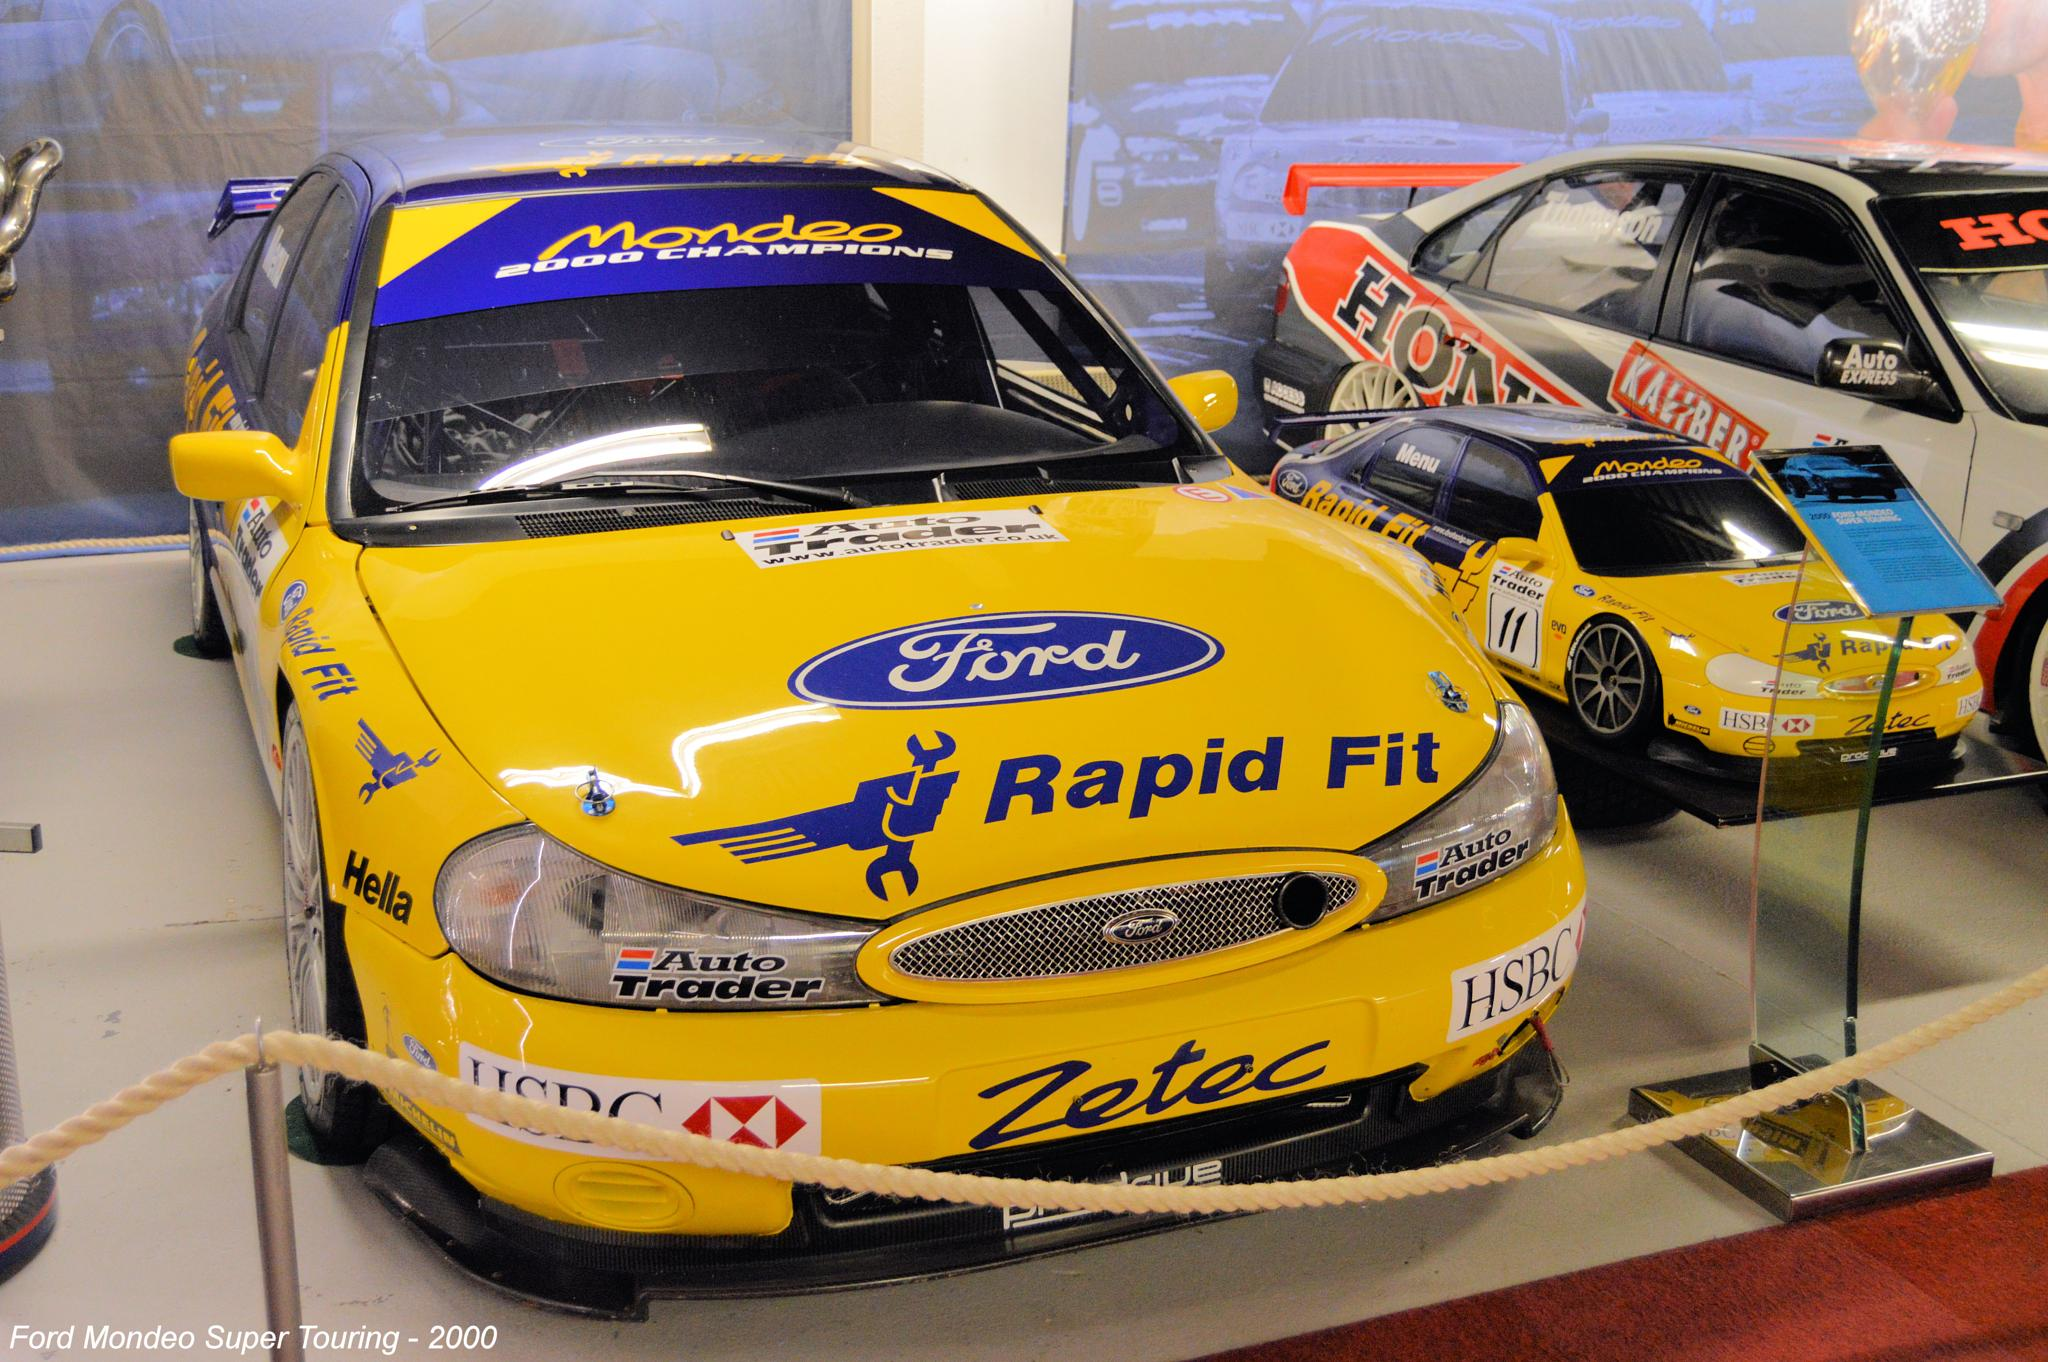 Ford Mondeo Super Touring - 2000 by Graham Wood Photo Collection